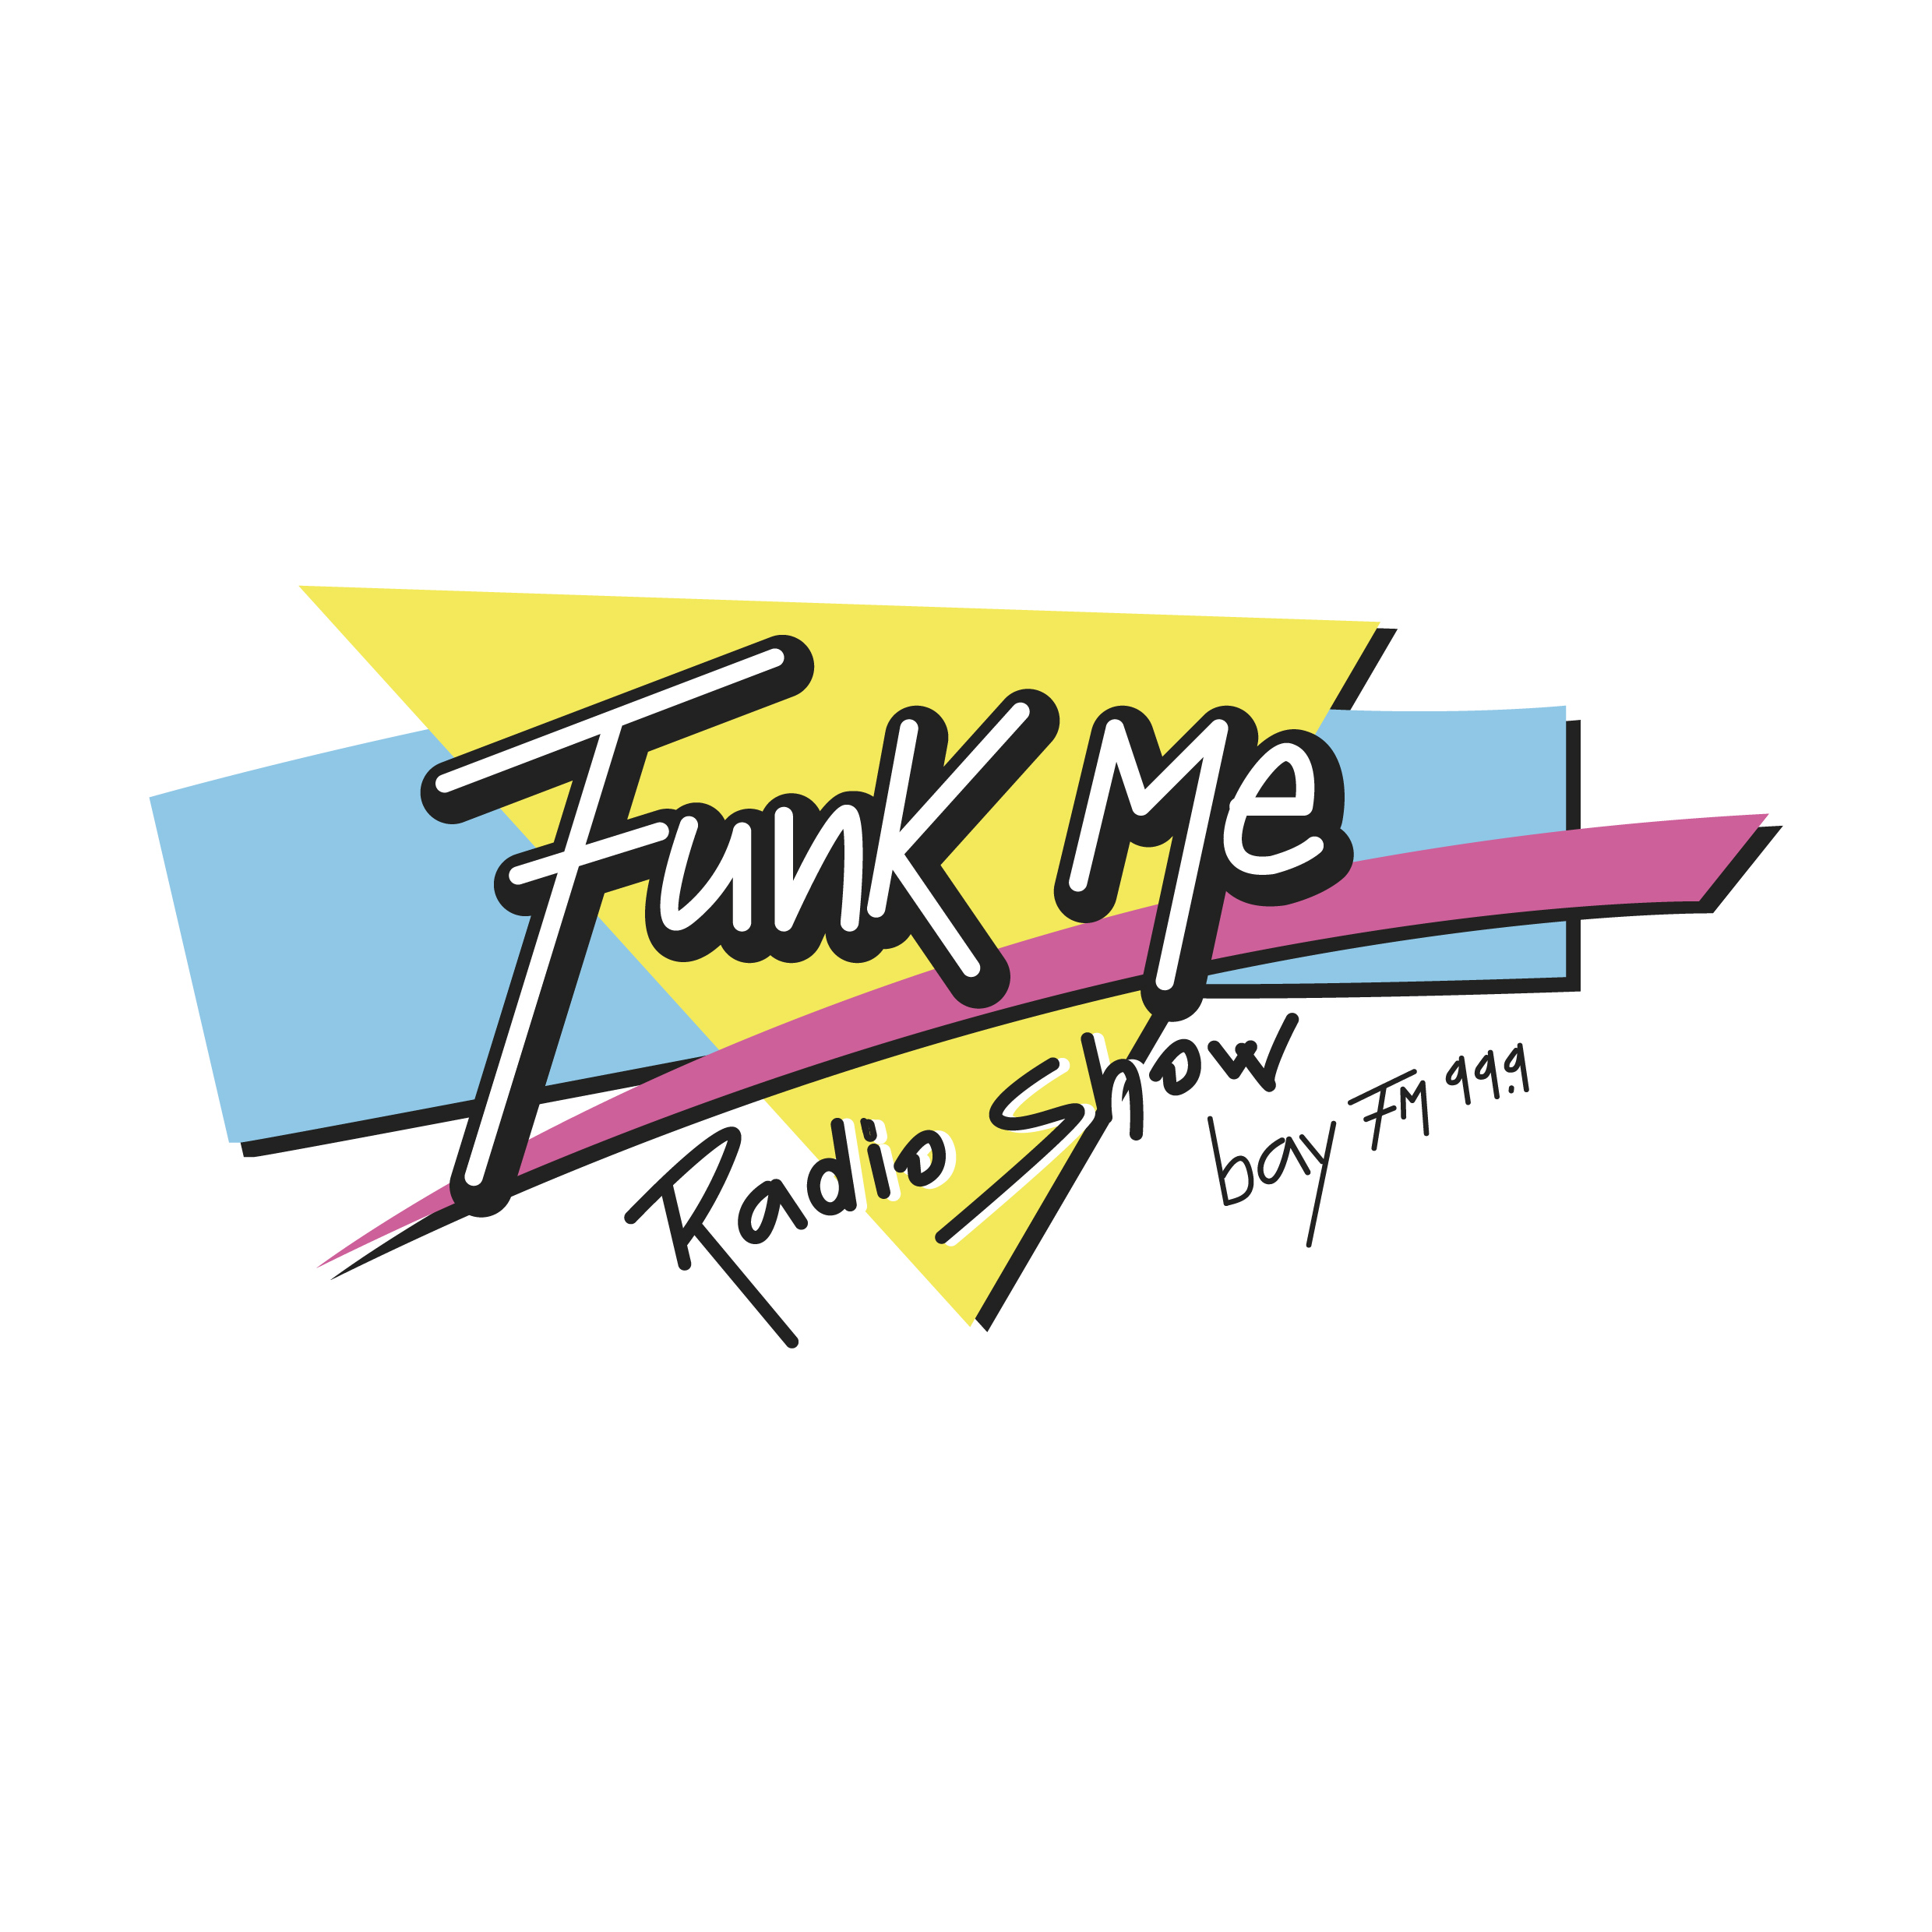 Funk Me! Radio Show with Nico Groove & Pedro on Bay FM - 99.9FM